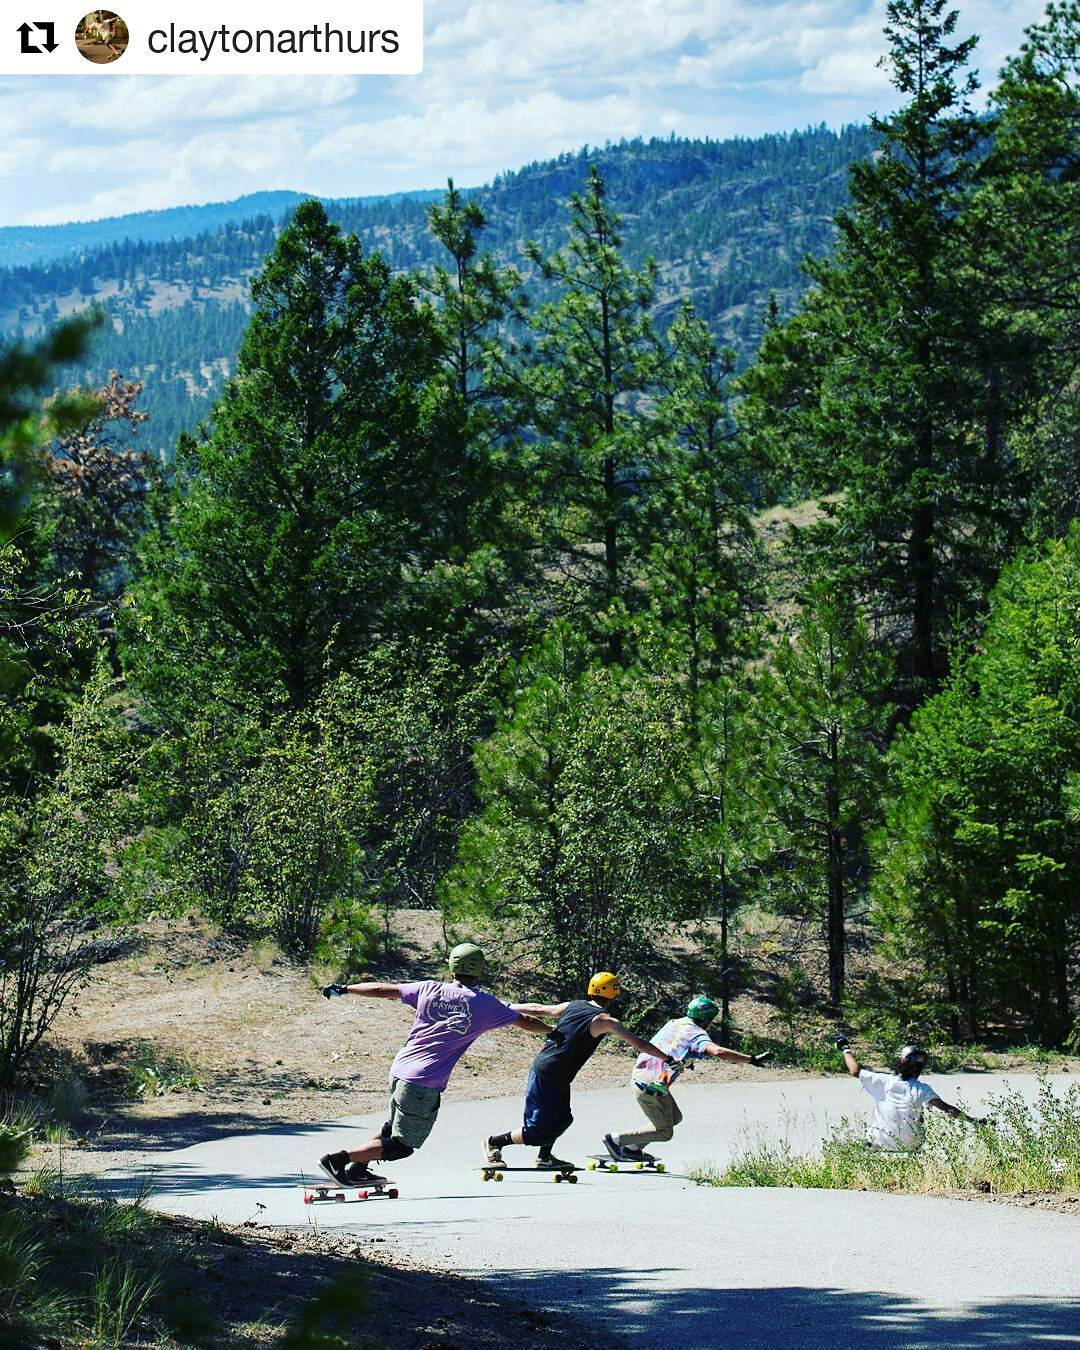 The giant was slain again at this year's freeride. For the few days in the year it is legal to ride this road, we make the most of it. A run with @claytonarthurs and the standup crew at #giantsheadfreeride  #longboarding #slide #rayne...